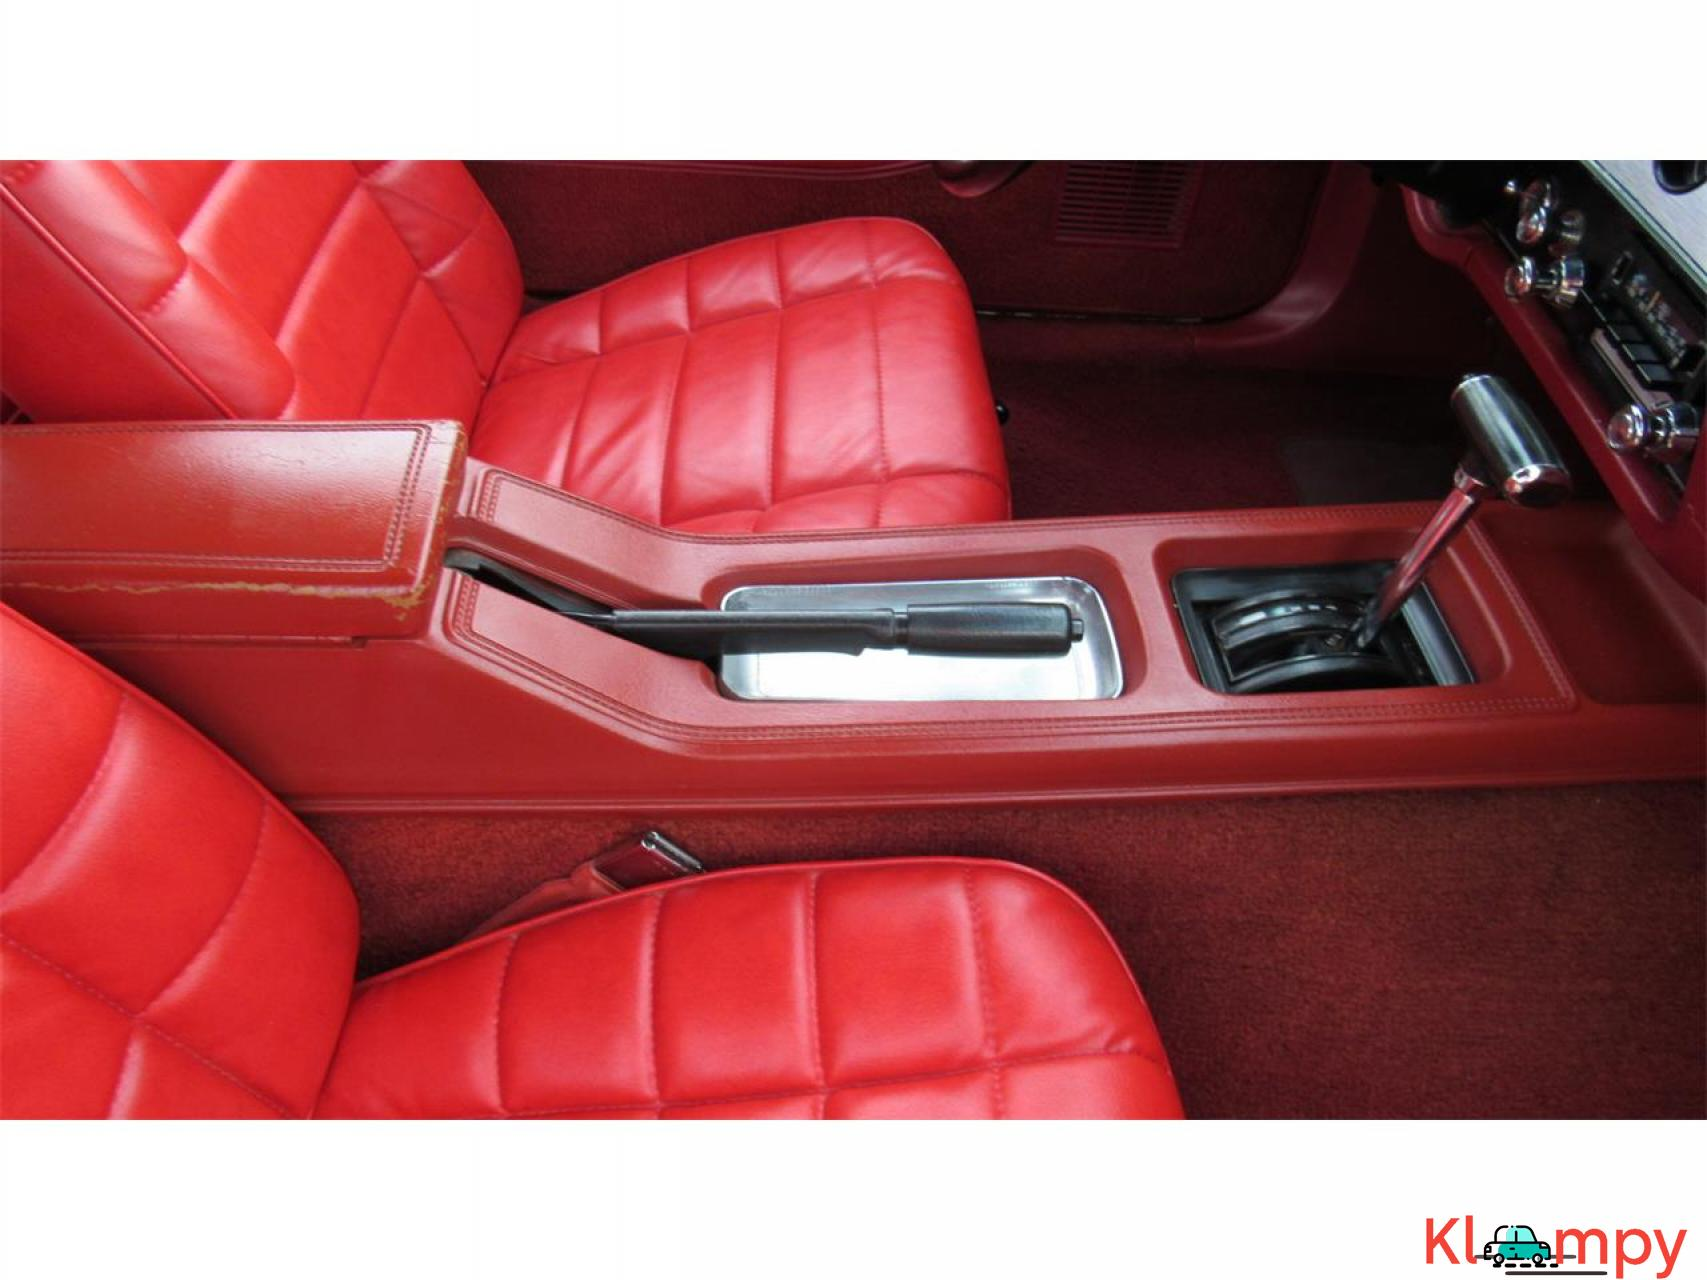 1978 Ford Mustang 302ci V8 Red - 13/17